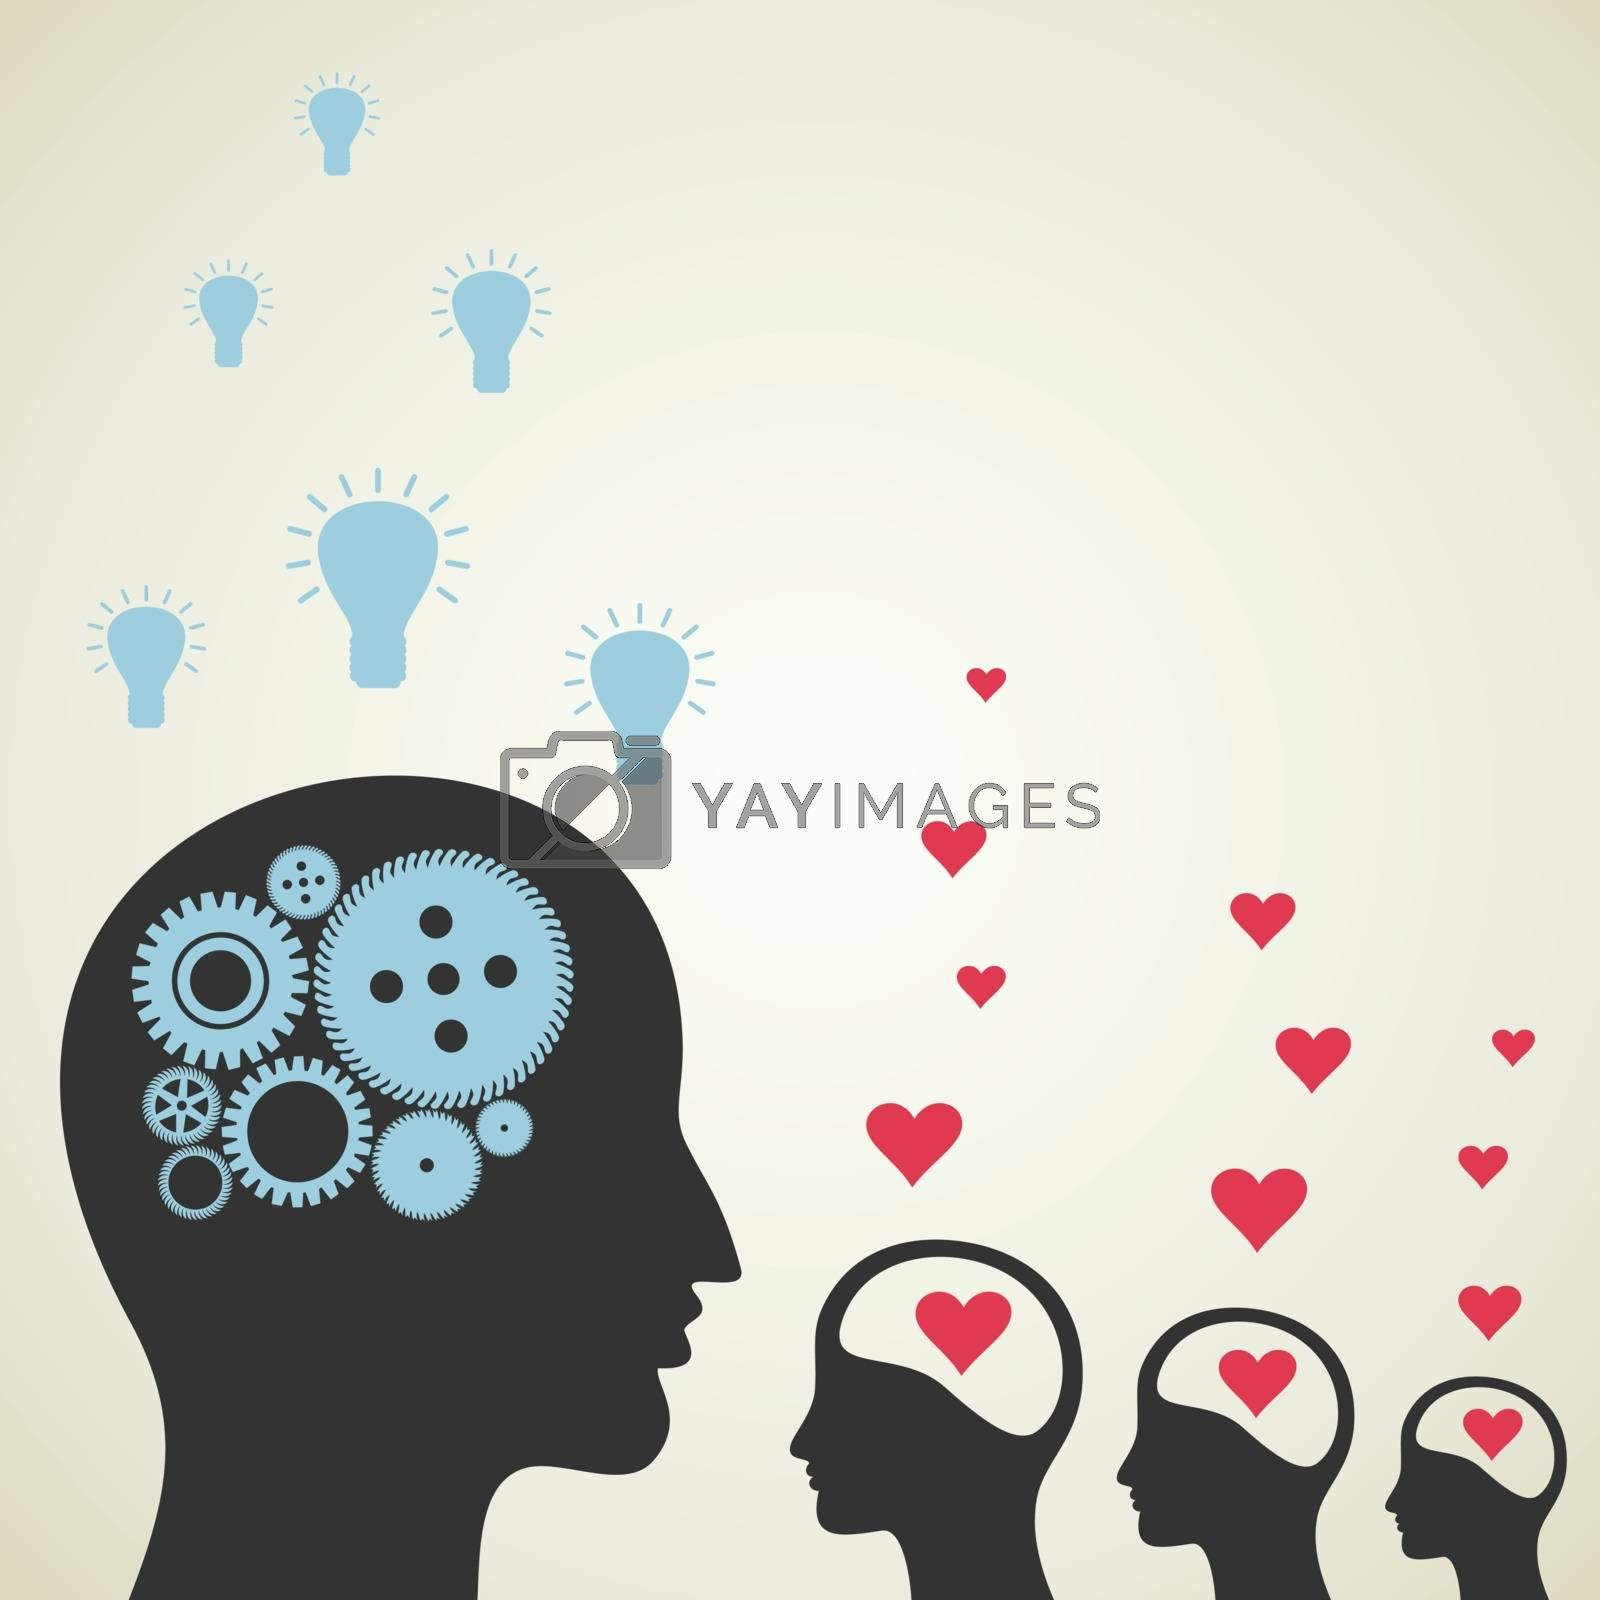 The ideological brain is more than enamoured. A vector illustration